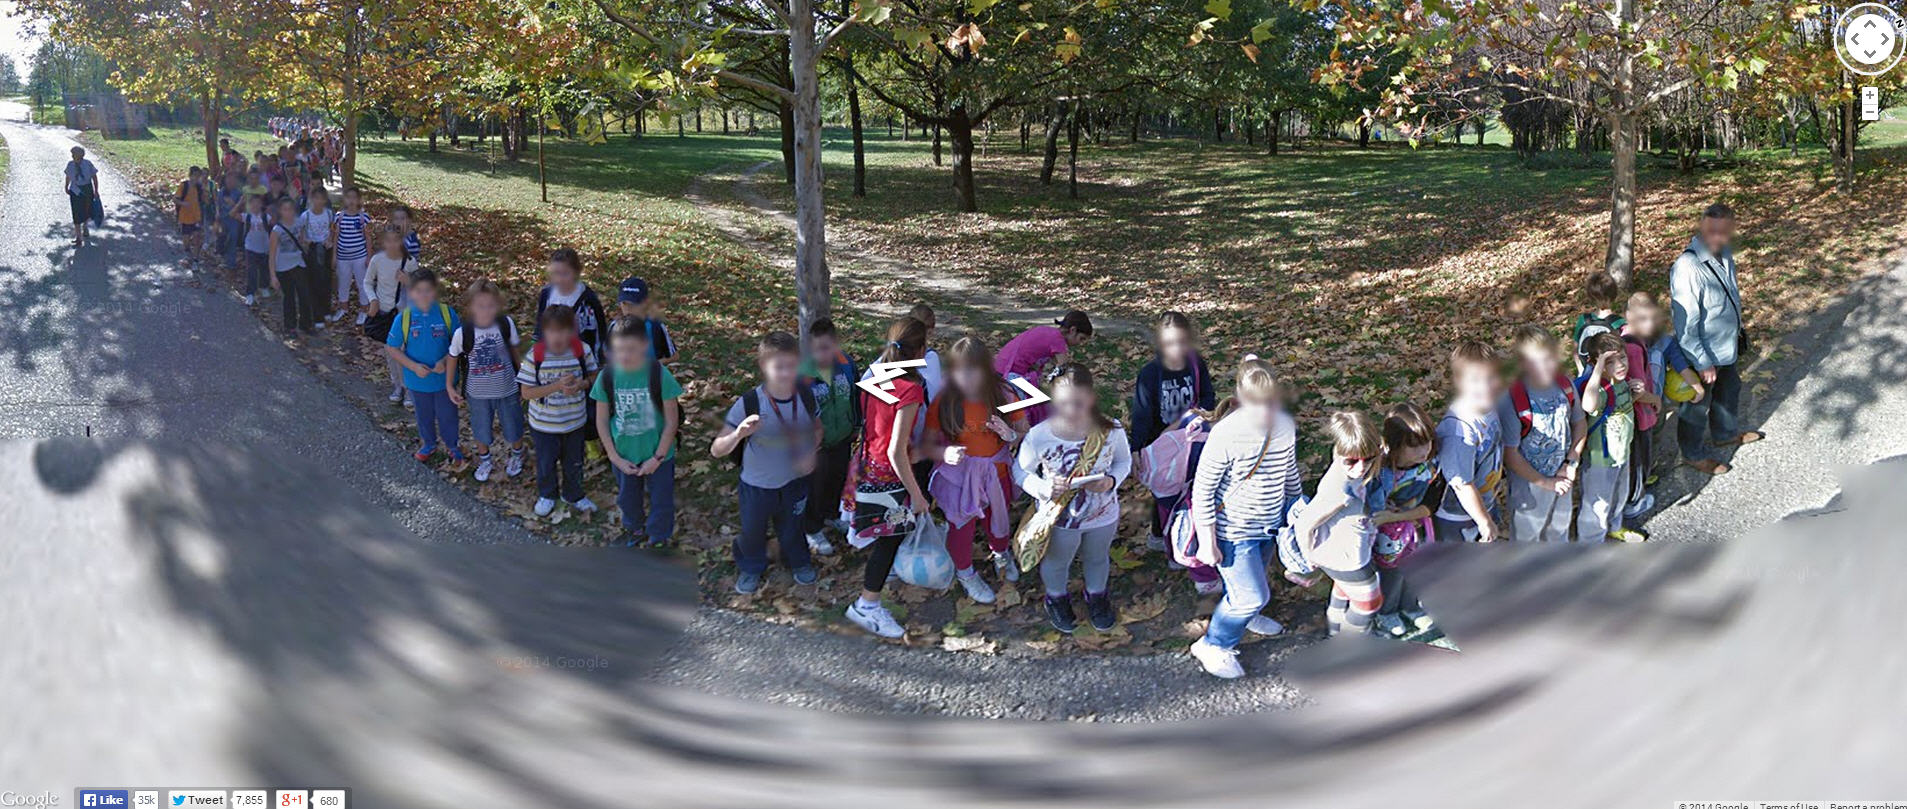 So nice of these kids to come out and pose for Google Street View